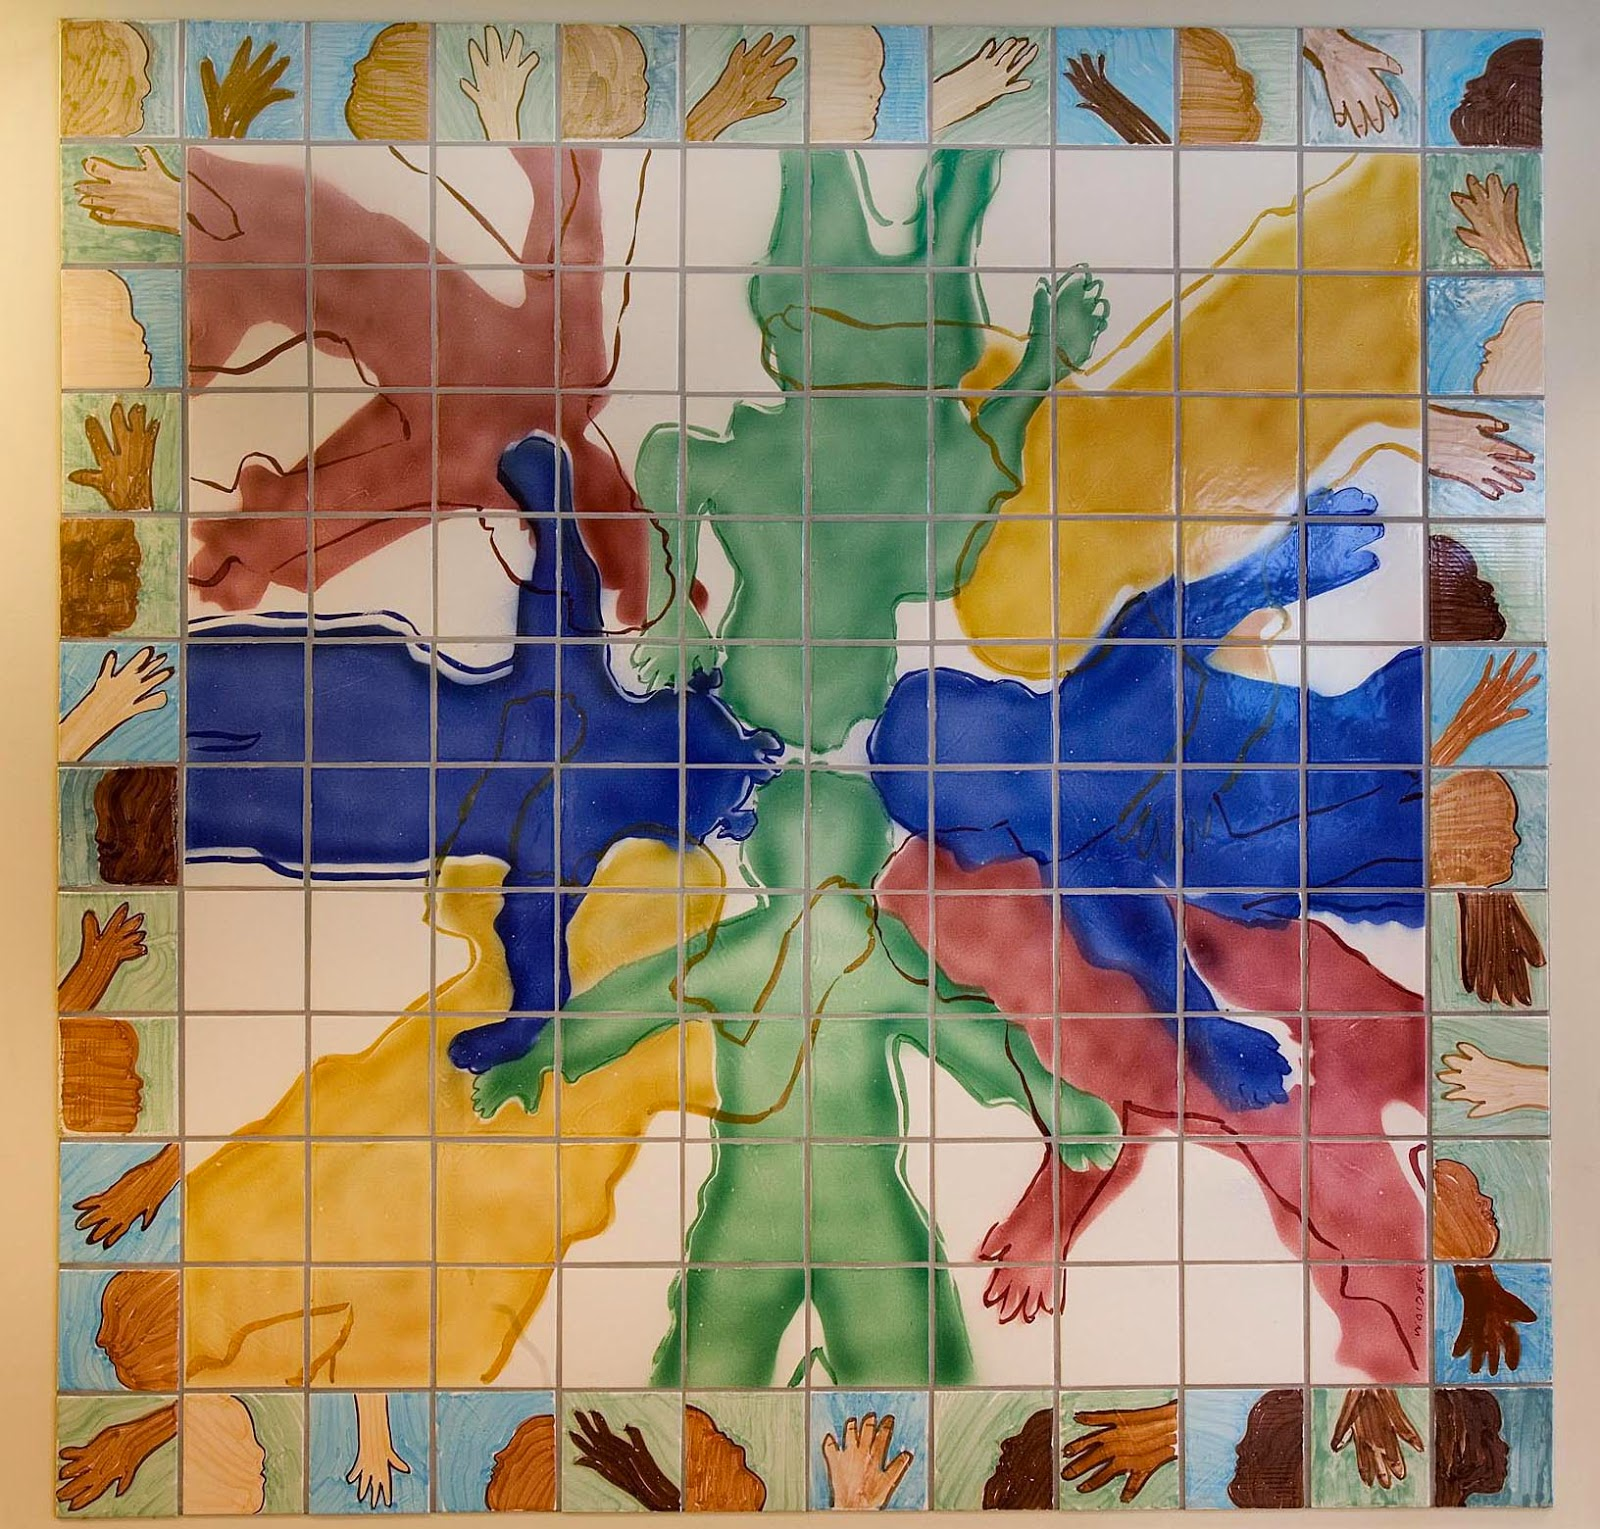 A ceramic tile mural celebrating autistic children and their ceramic tile mural celebrates autistic children and their families doublecrazyfo Images